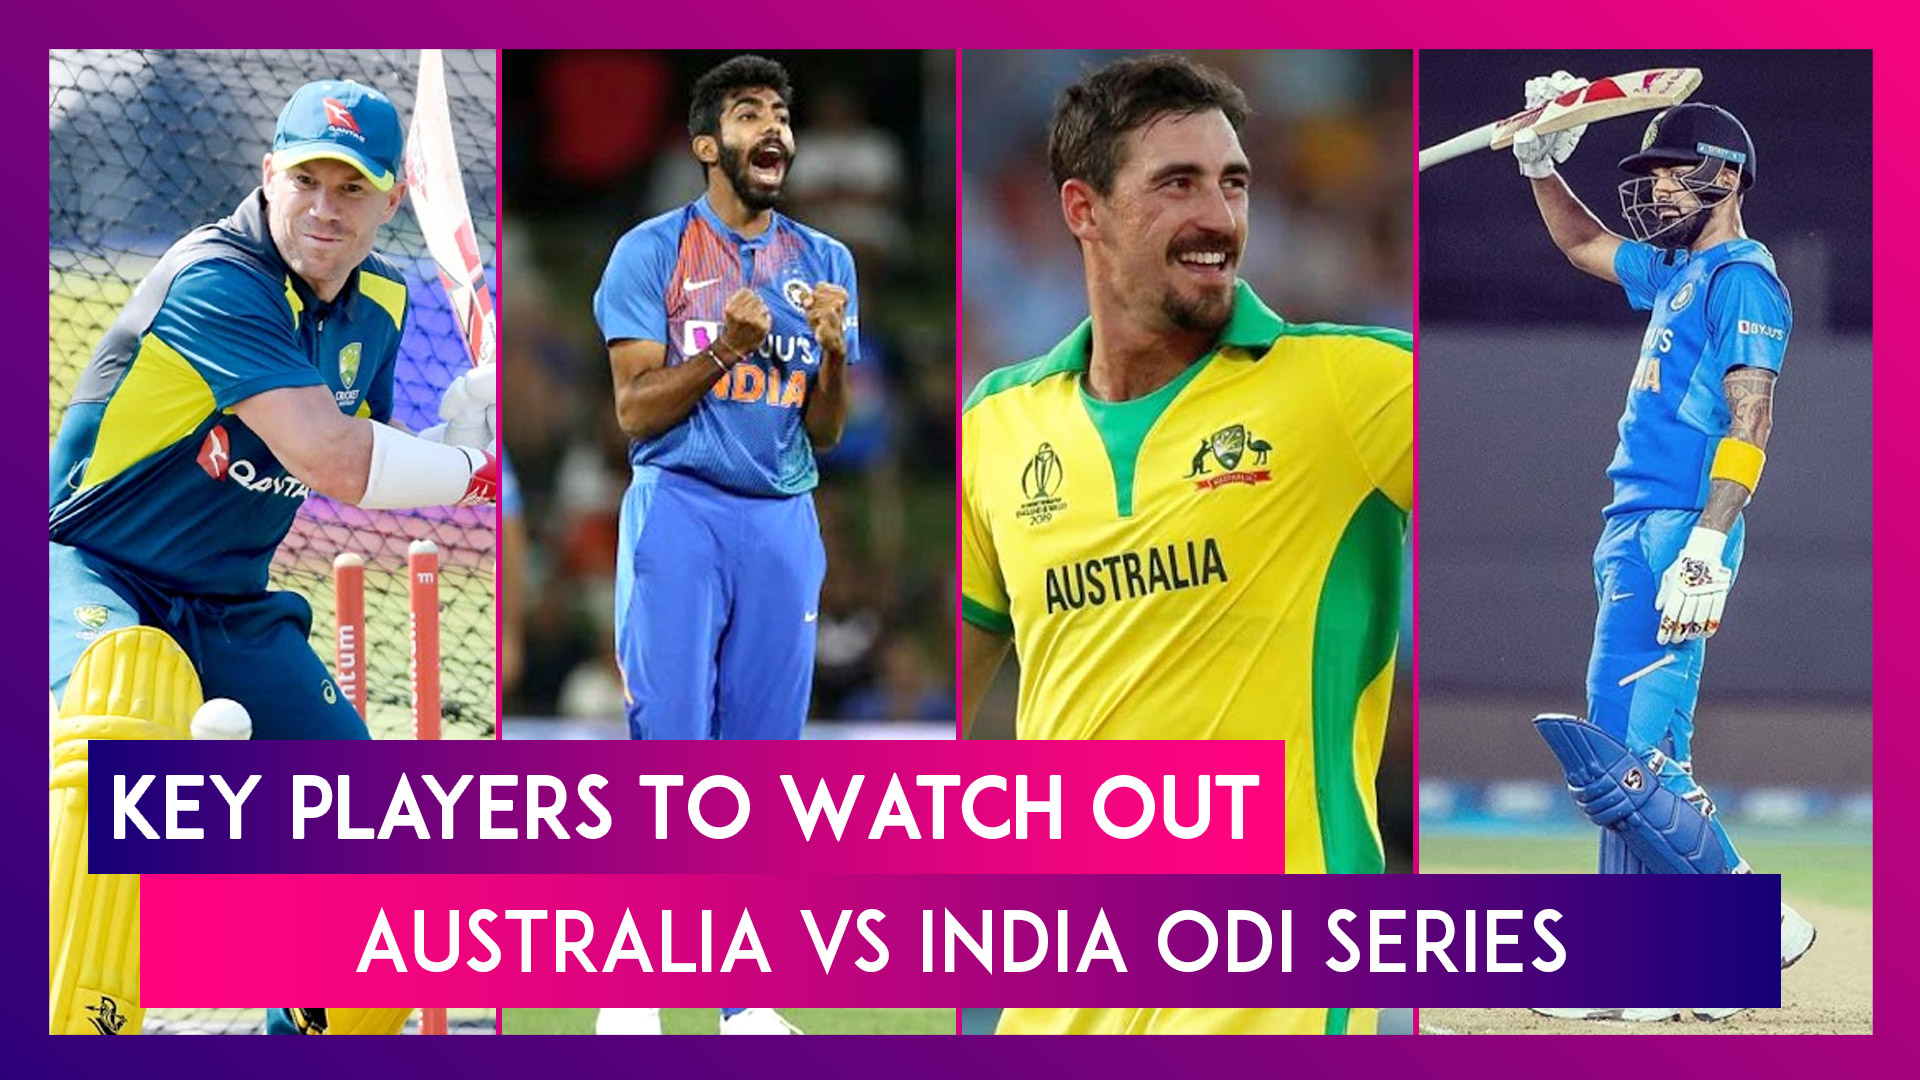 David Warner, Jaspirt Bumrah And Other Key Players To Watch Out For in Australia vs India ODI Series